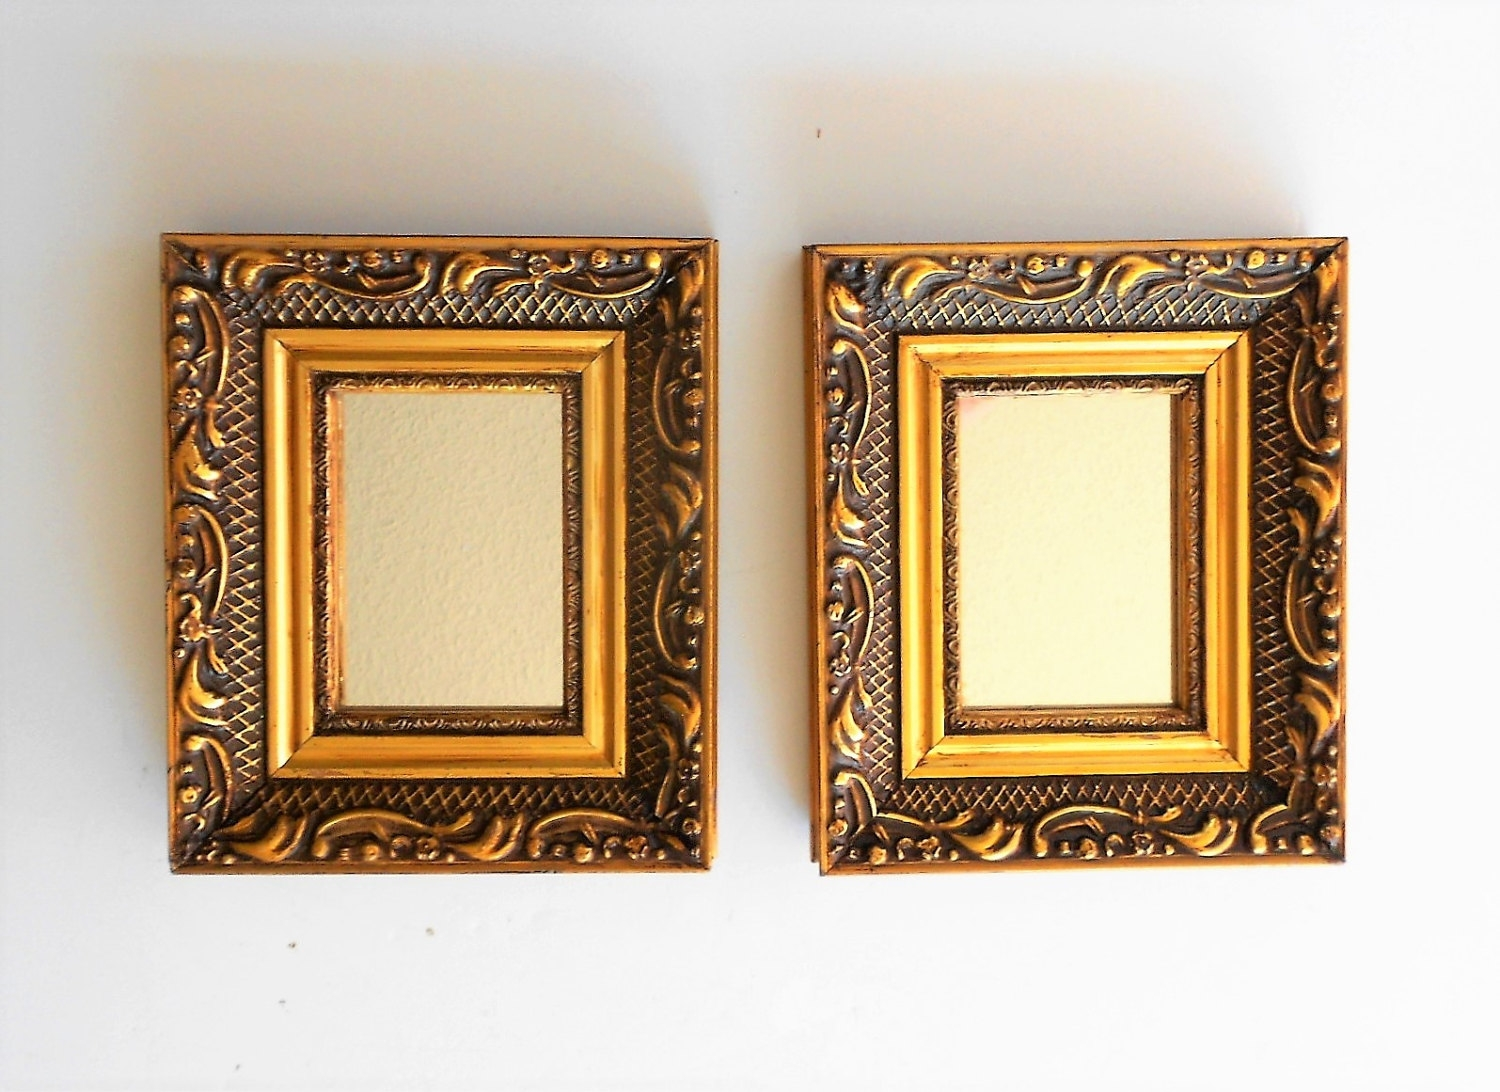 115h Wall Mirror Decorative Wall Mirror Small Wall Mirror With Regard To Decorative Small Mirrors (Image 1 of 15)